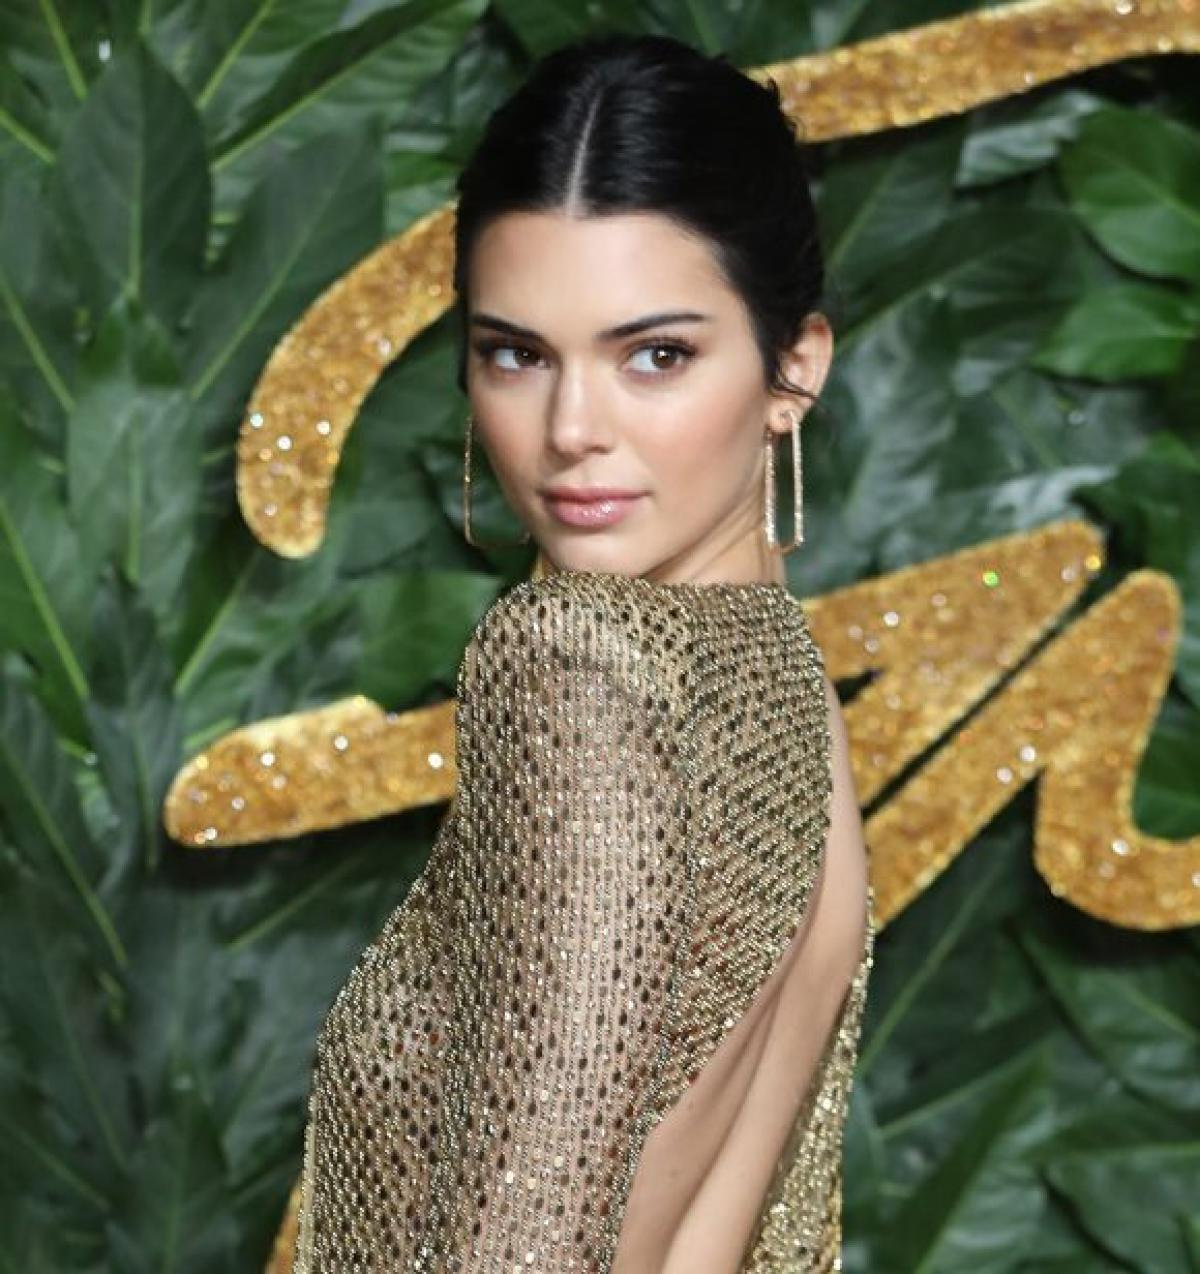 Fyre Festival: Kendal Jenner, Bella Hadid And More Likely To Face Court